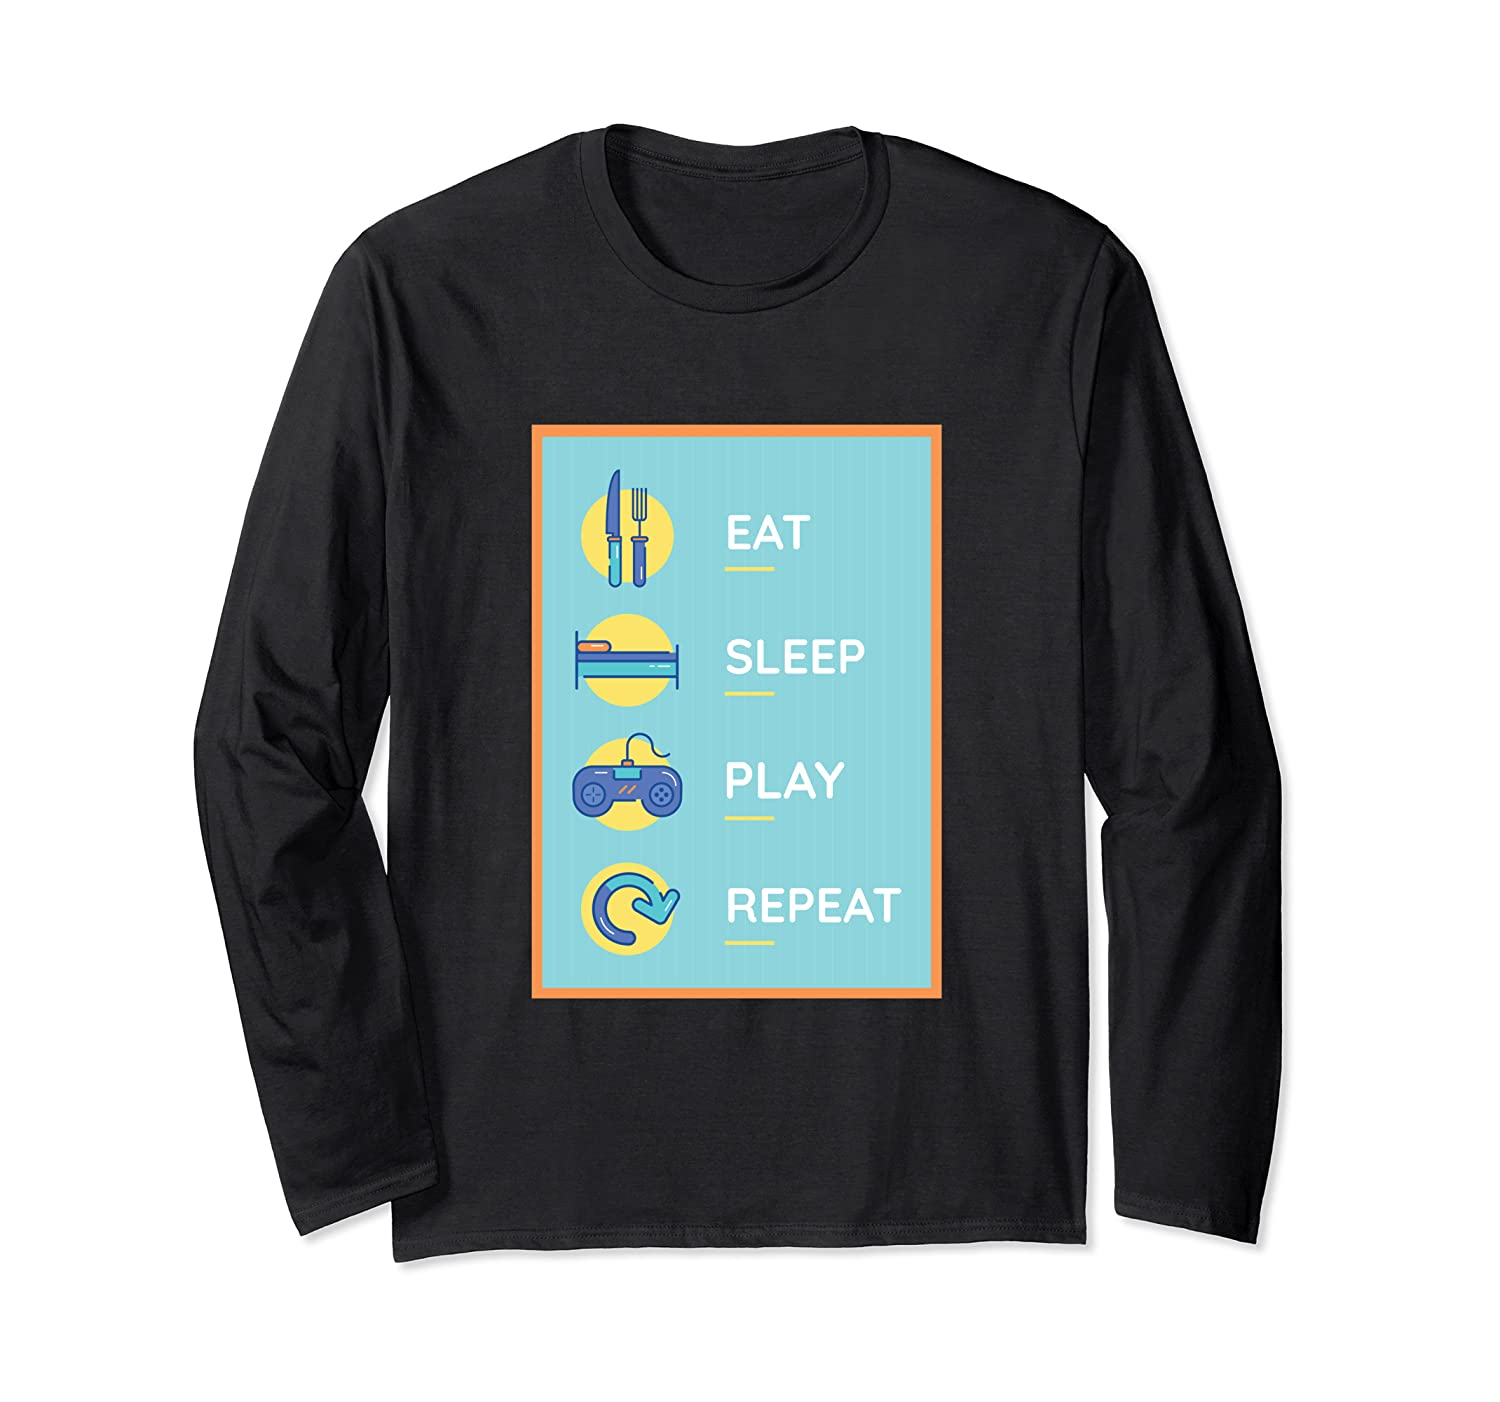 Gamer Gift - Eat Sleep Play Repeat Funny Video Game Long Sleeve T-Shirt-TH